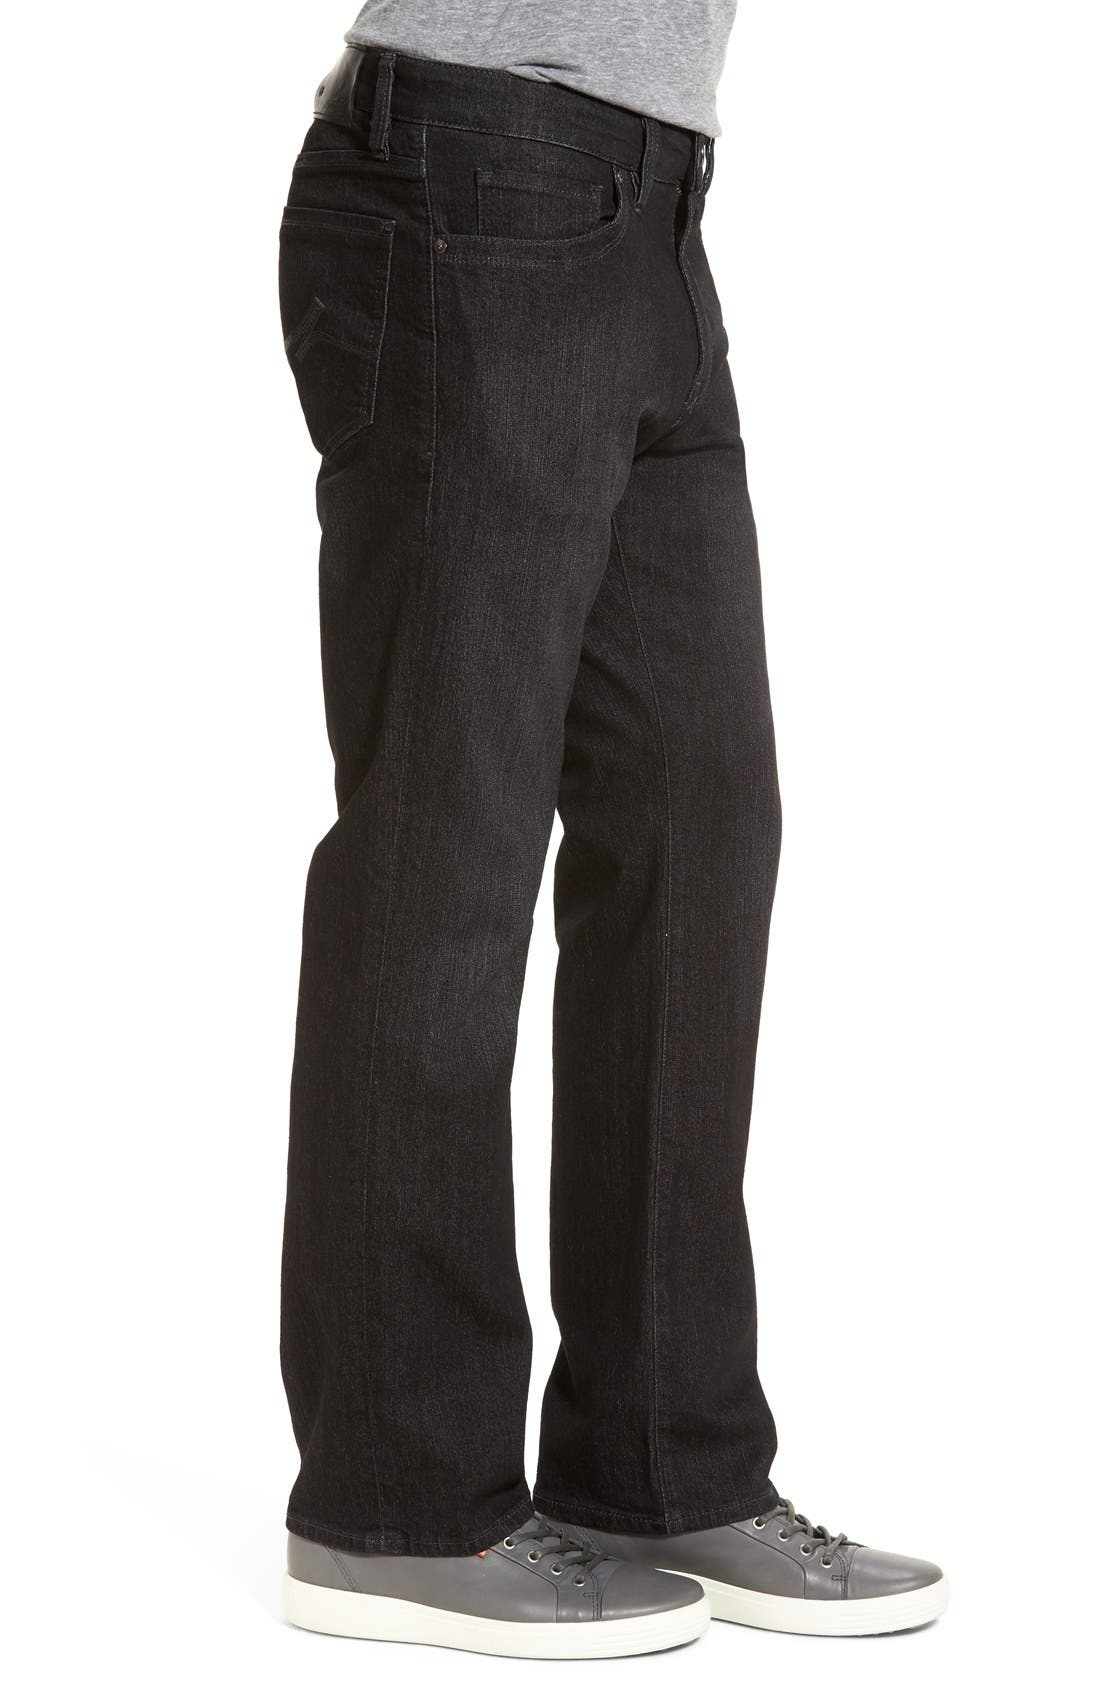 Alternate Image 3  - 34 Heritage 'Charisma' Relaxed Fit Jeans (Charcoal Comfort) (Online Only)